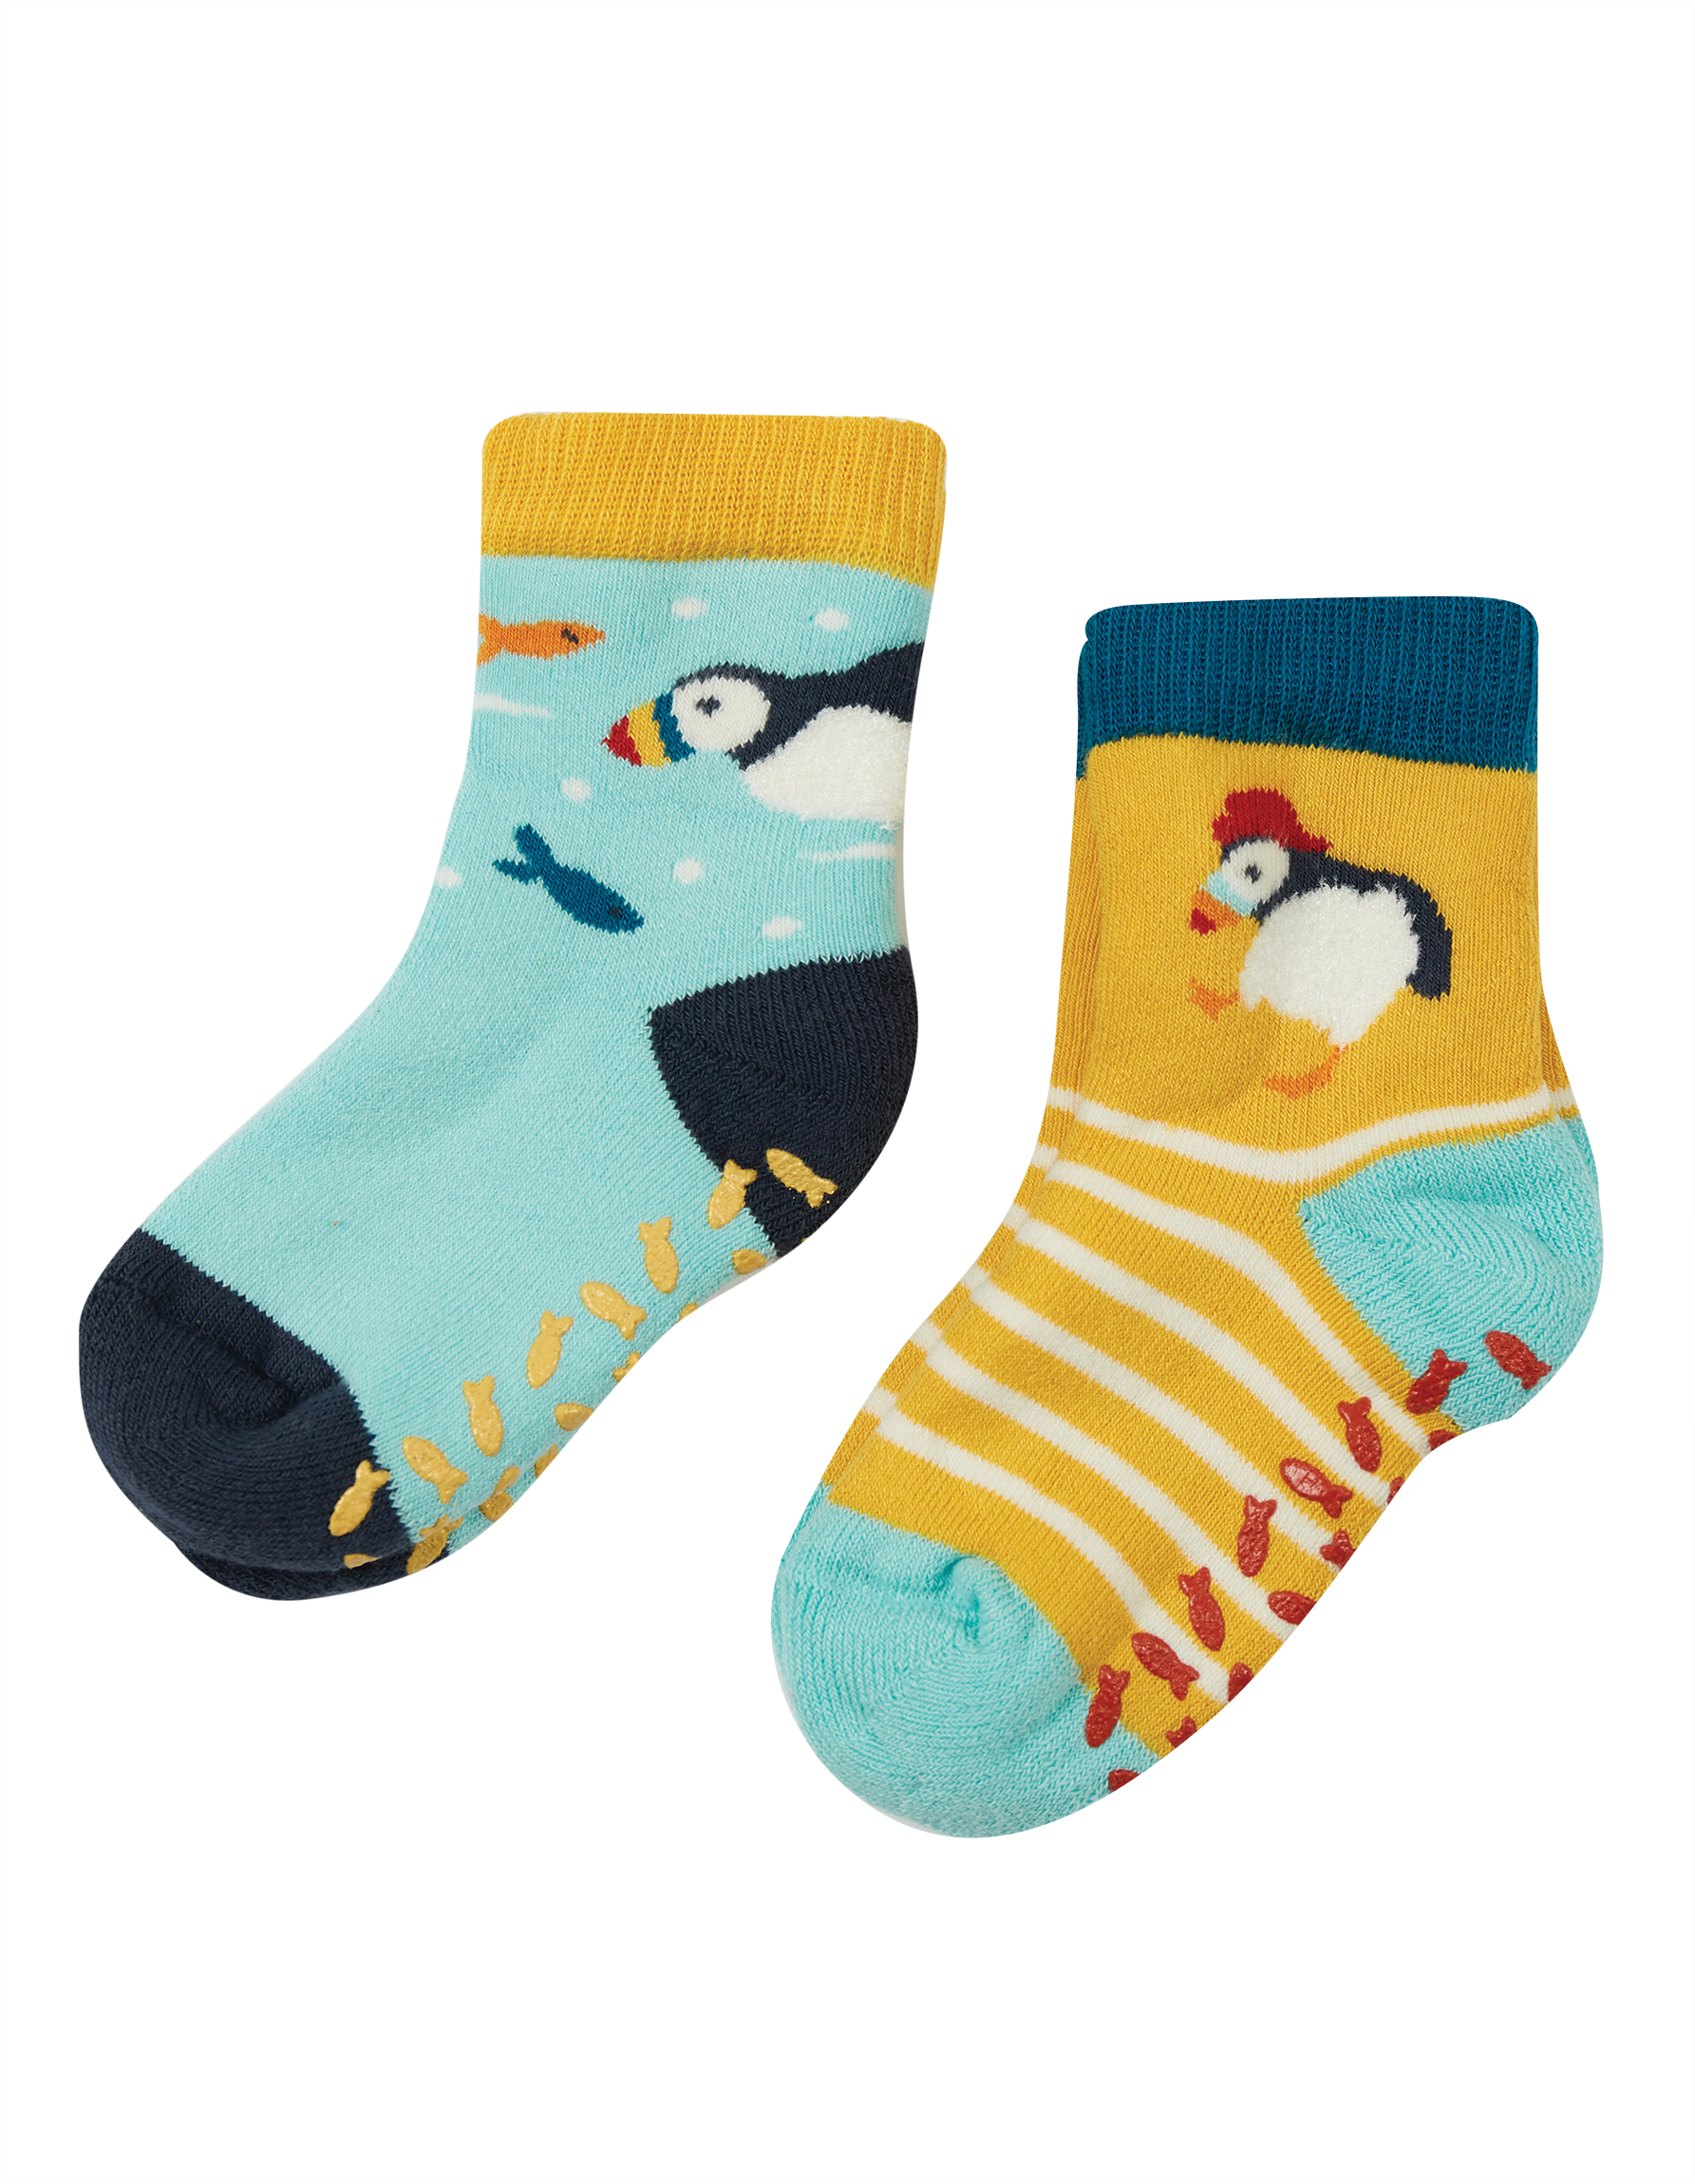 Frugi The National Trust Grippy Socks, 2 Pack Puffin